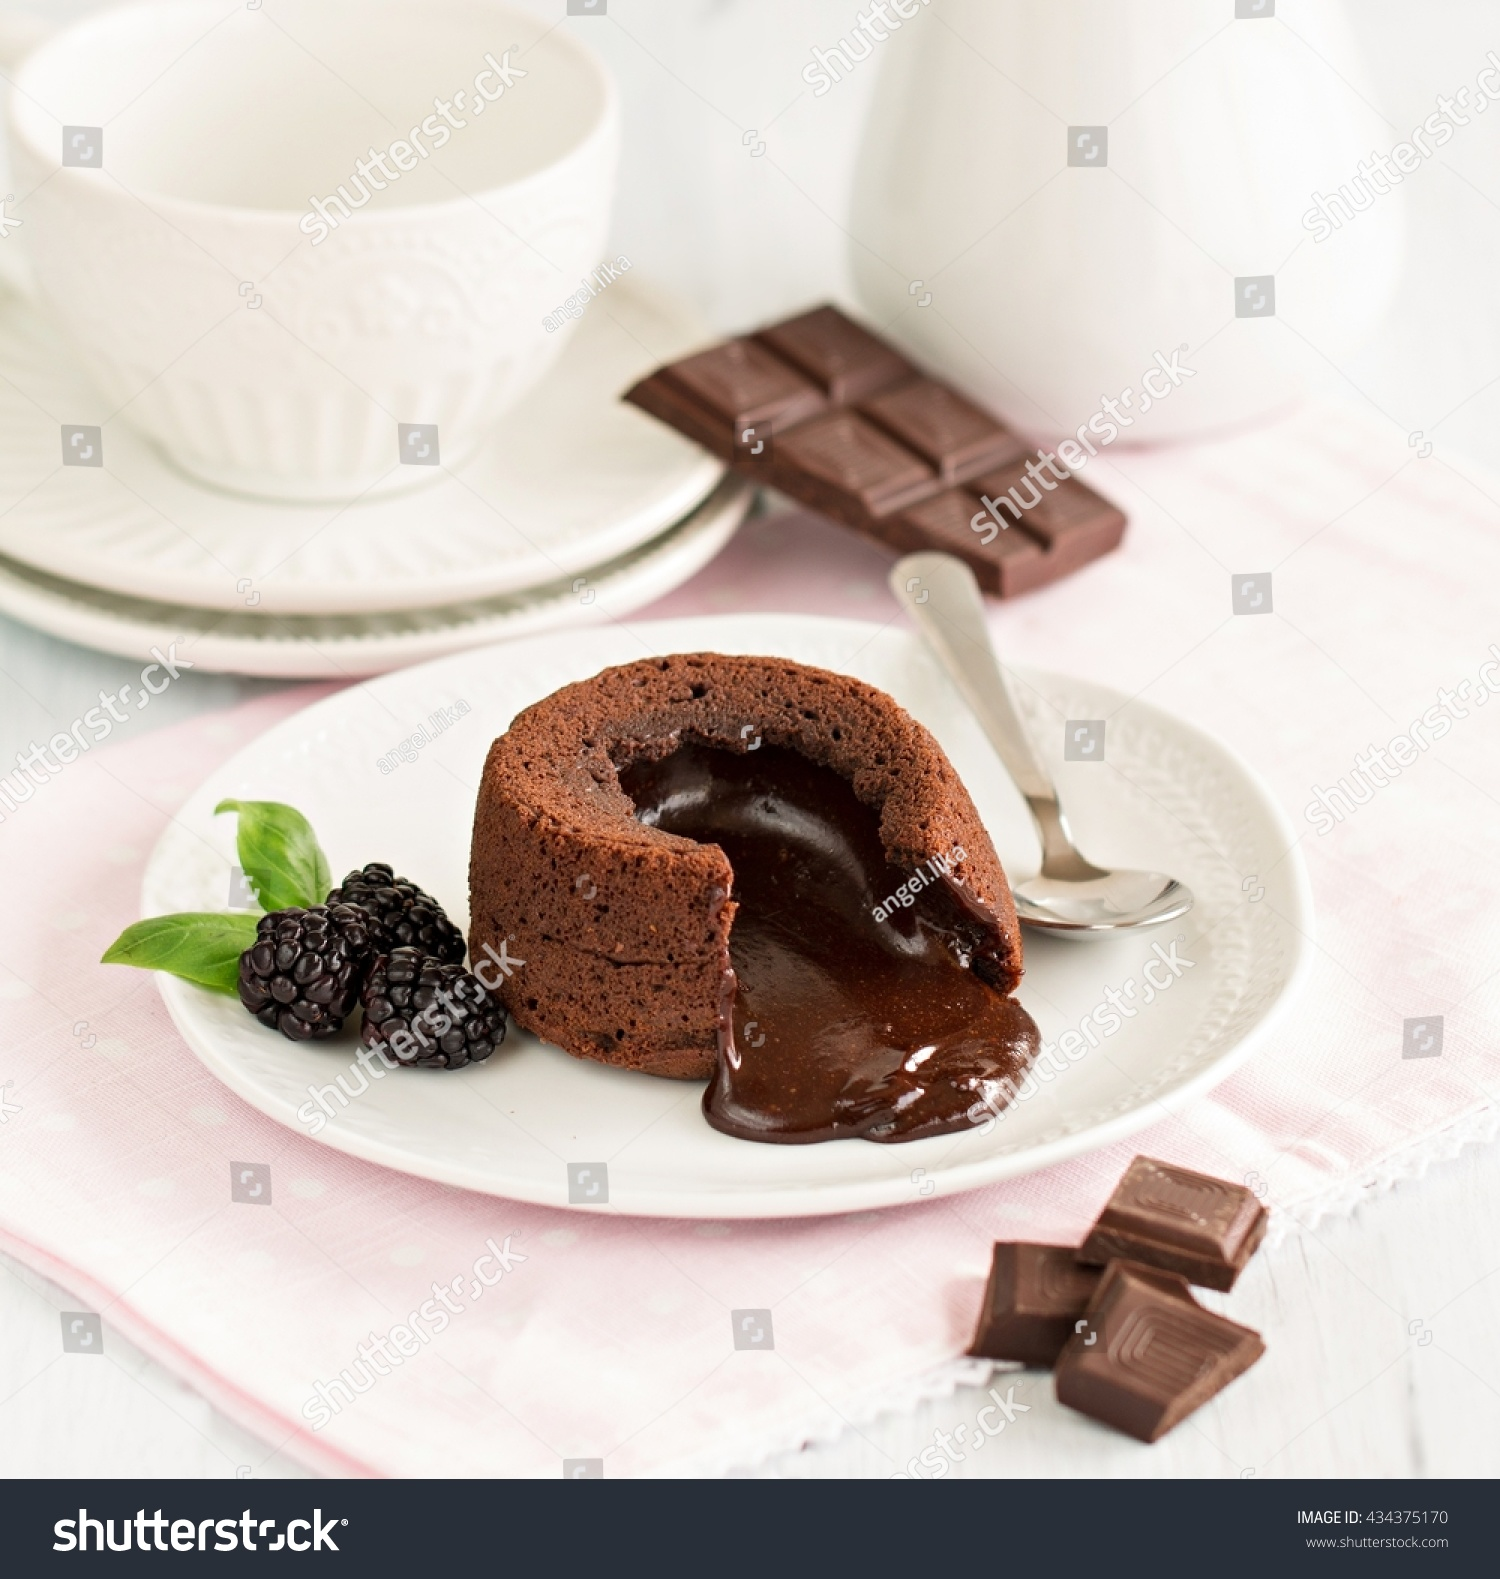 Warm Dessert Chocolate Fondant Lava Cake Stock Photo ...